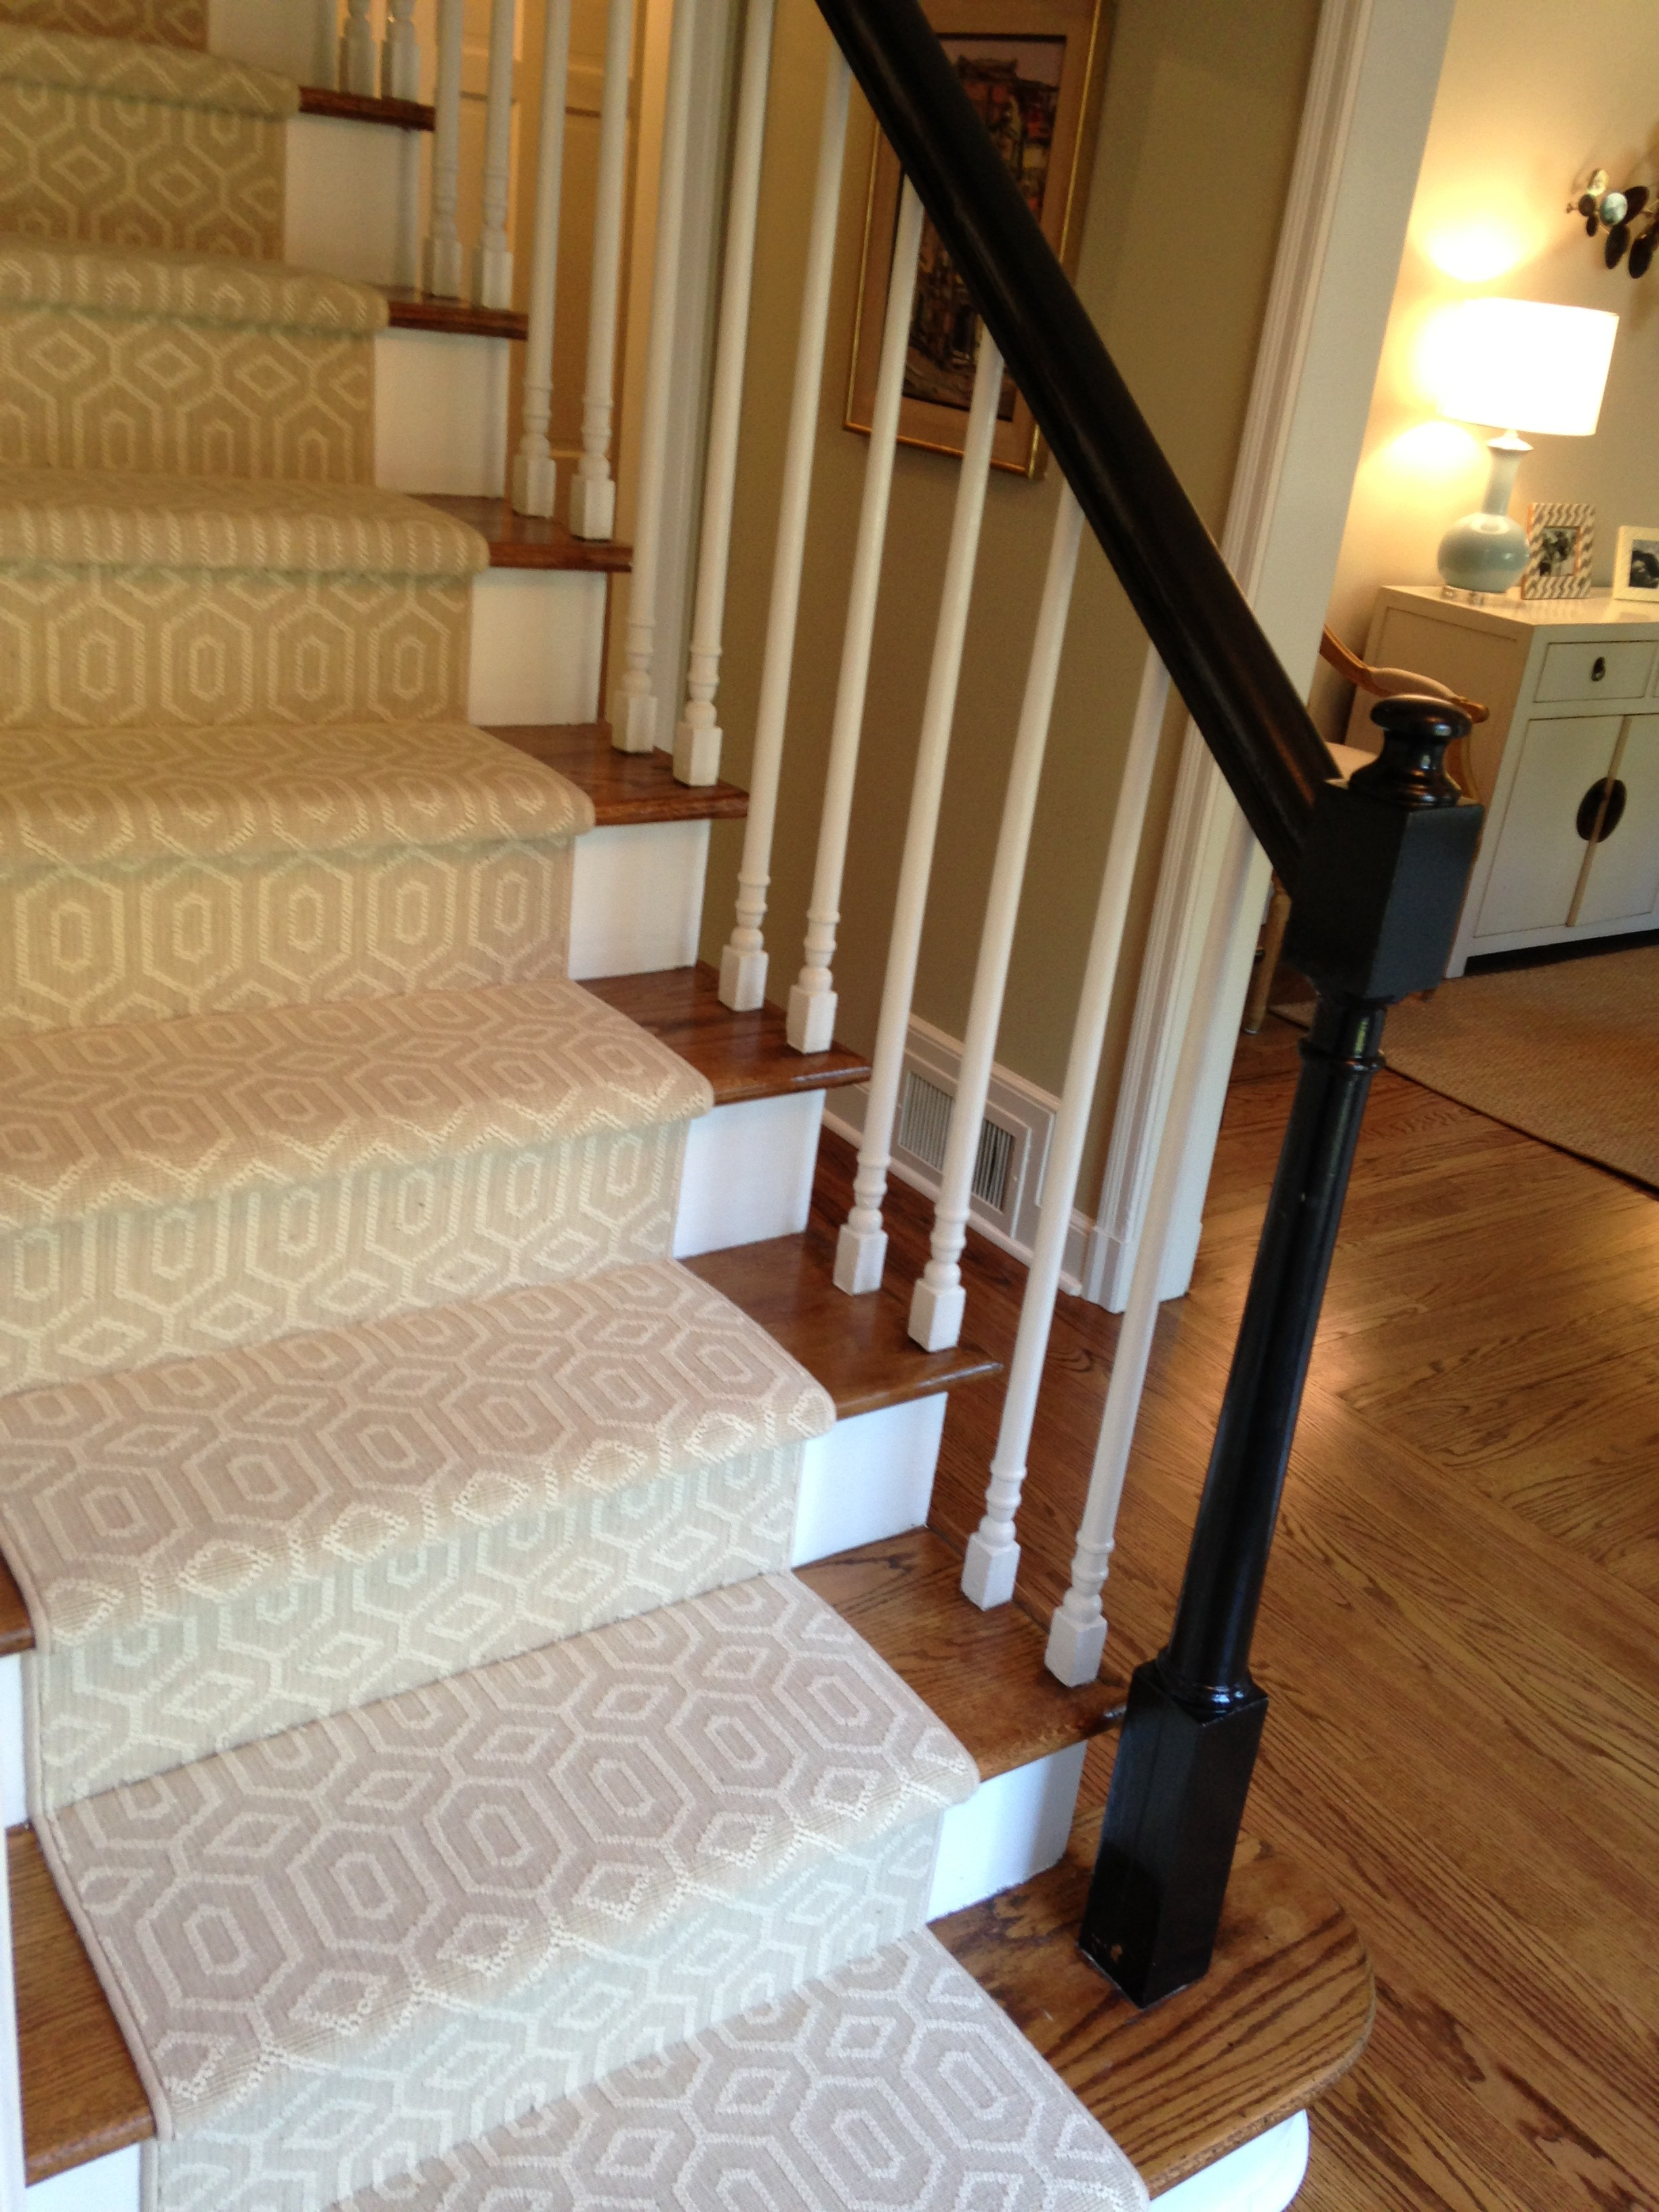 Stunning carpet runner choosing a stair runner: some inspiration and lessons learned jrvnjou